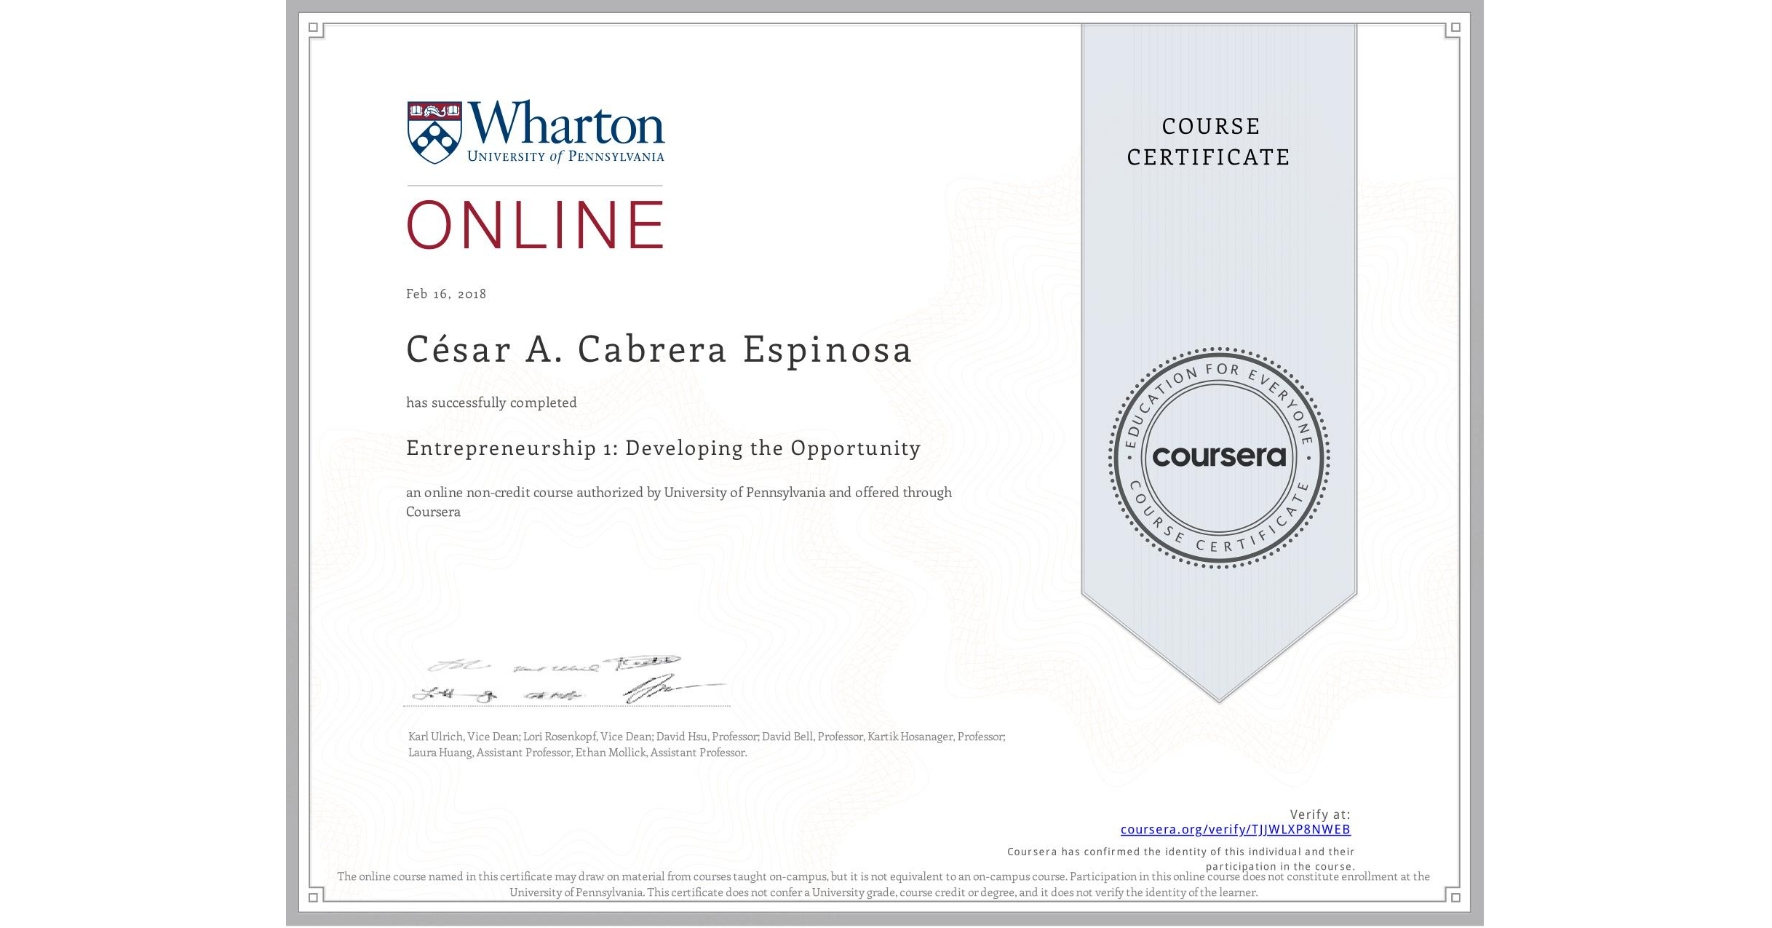 View certificate for César Cabrera Espinosa, Entrepreneurship 1: Developing the Opportunity, an online non-credit course authorized by University of Pennsylvania and offered through Coursera